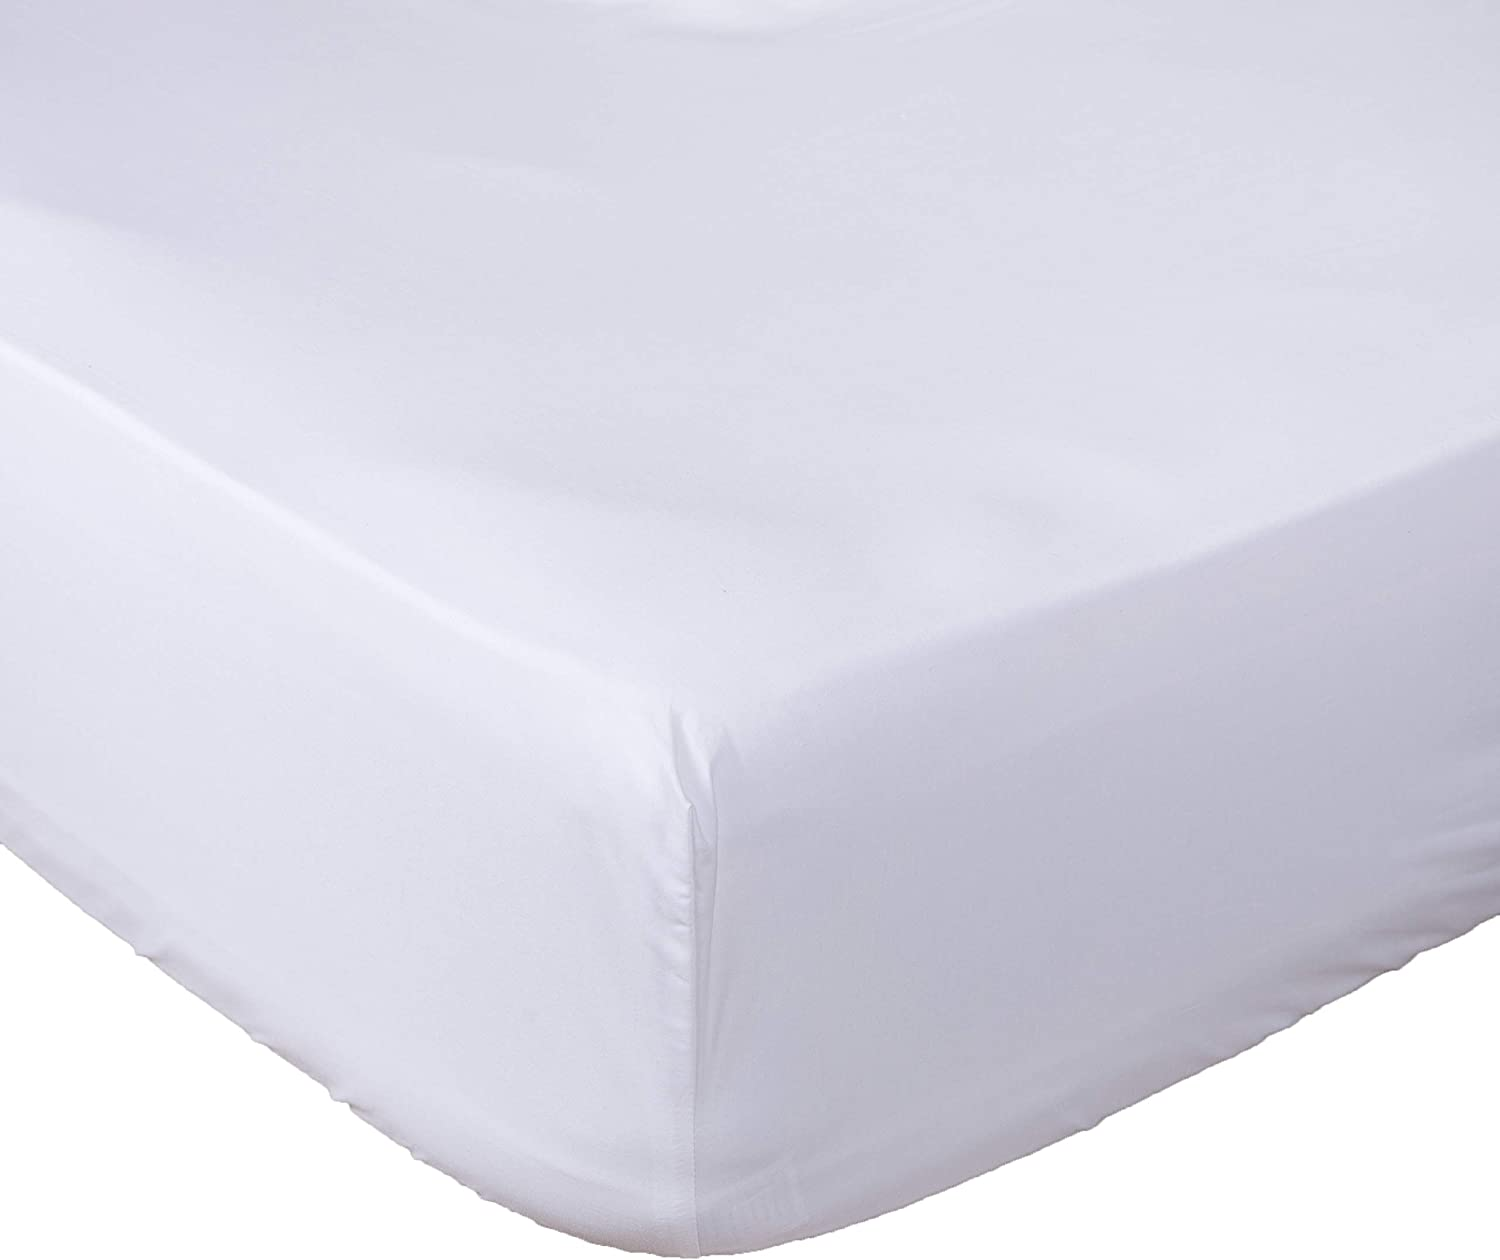 Lux Decor Collection Fitted Sheet King White Brushed Microfiber 1800 Bedding - Wrinkle, Fade, Stain Resistant - Hypoallergenic (White, King)